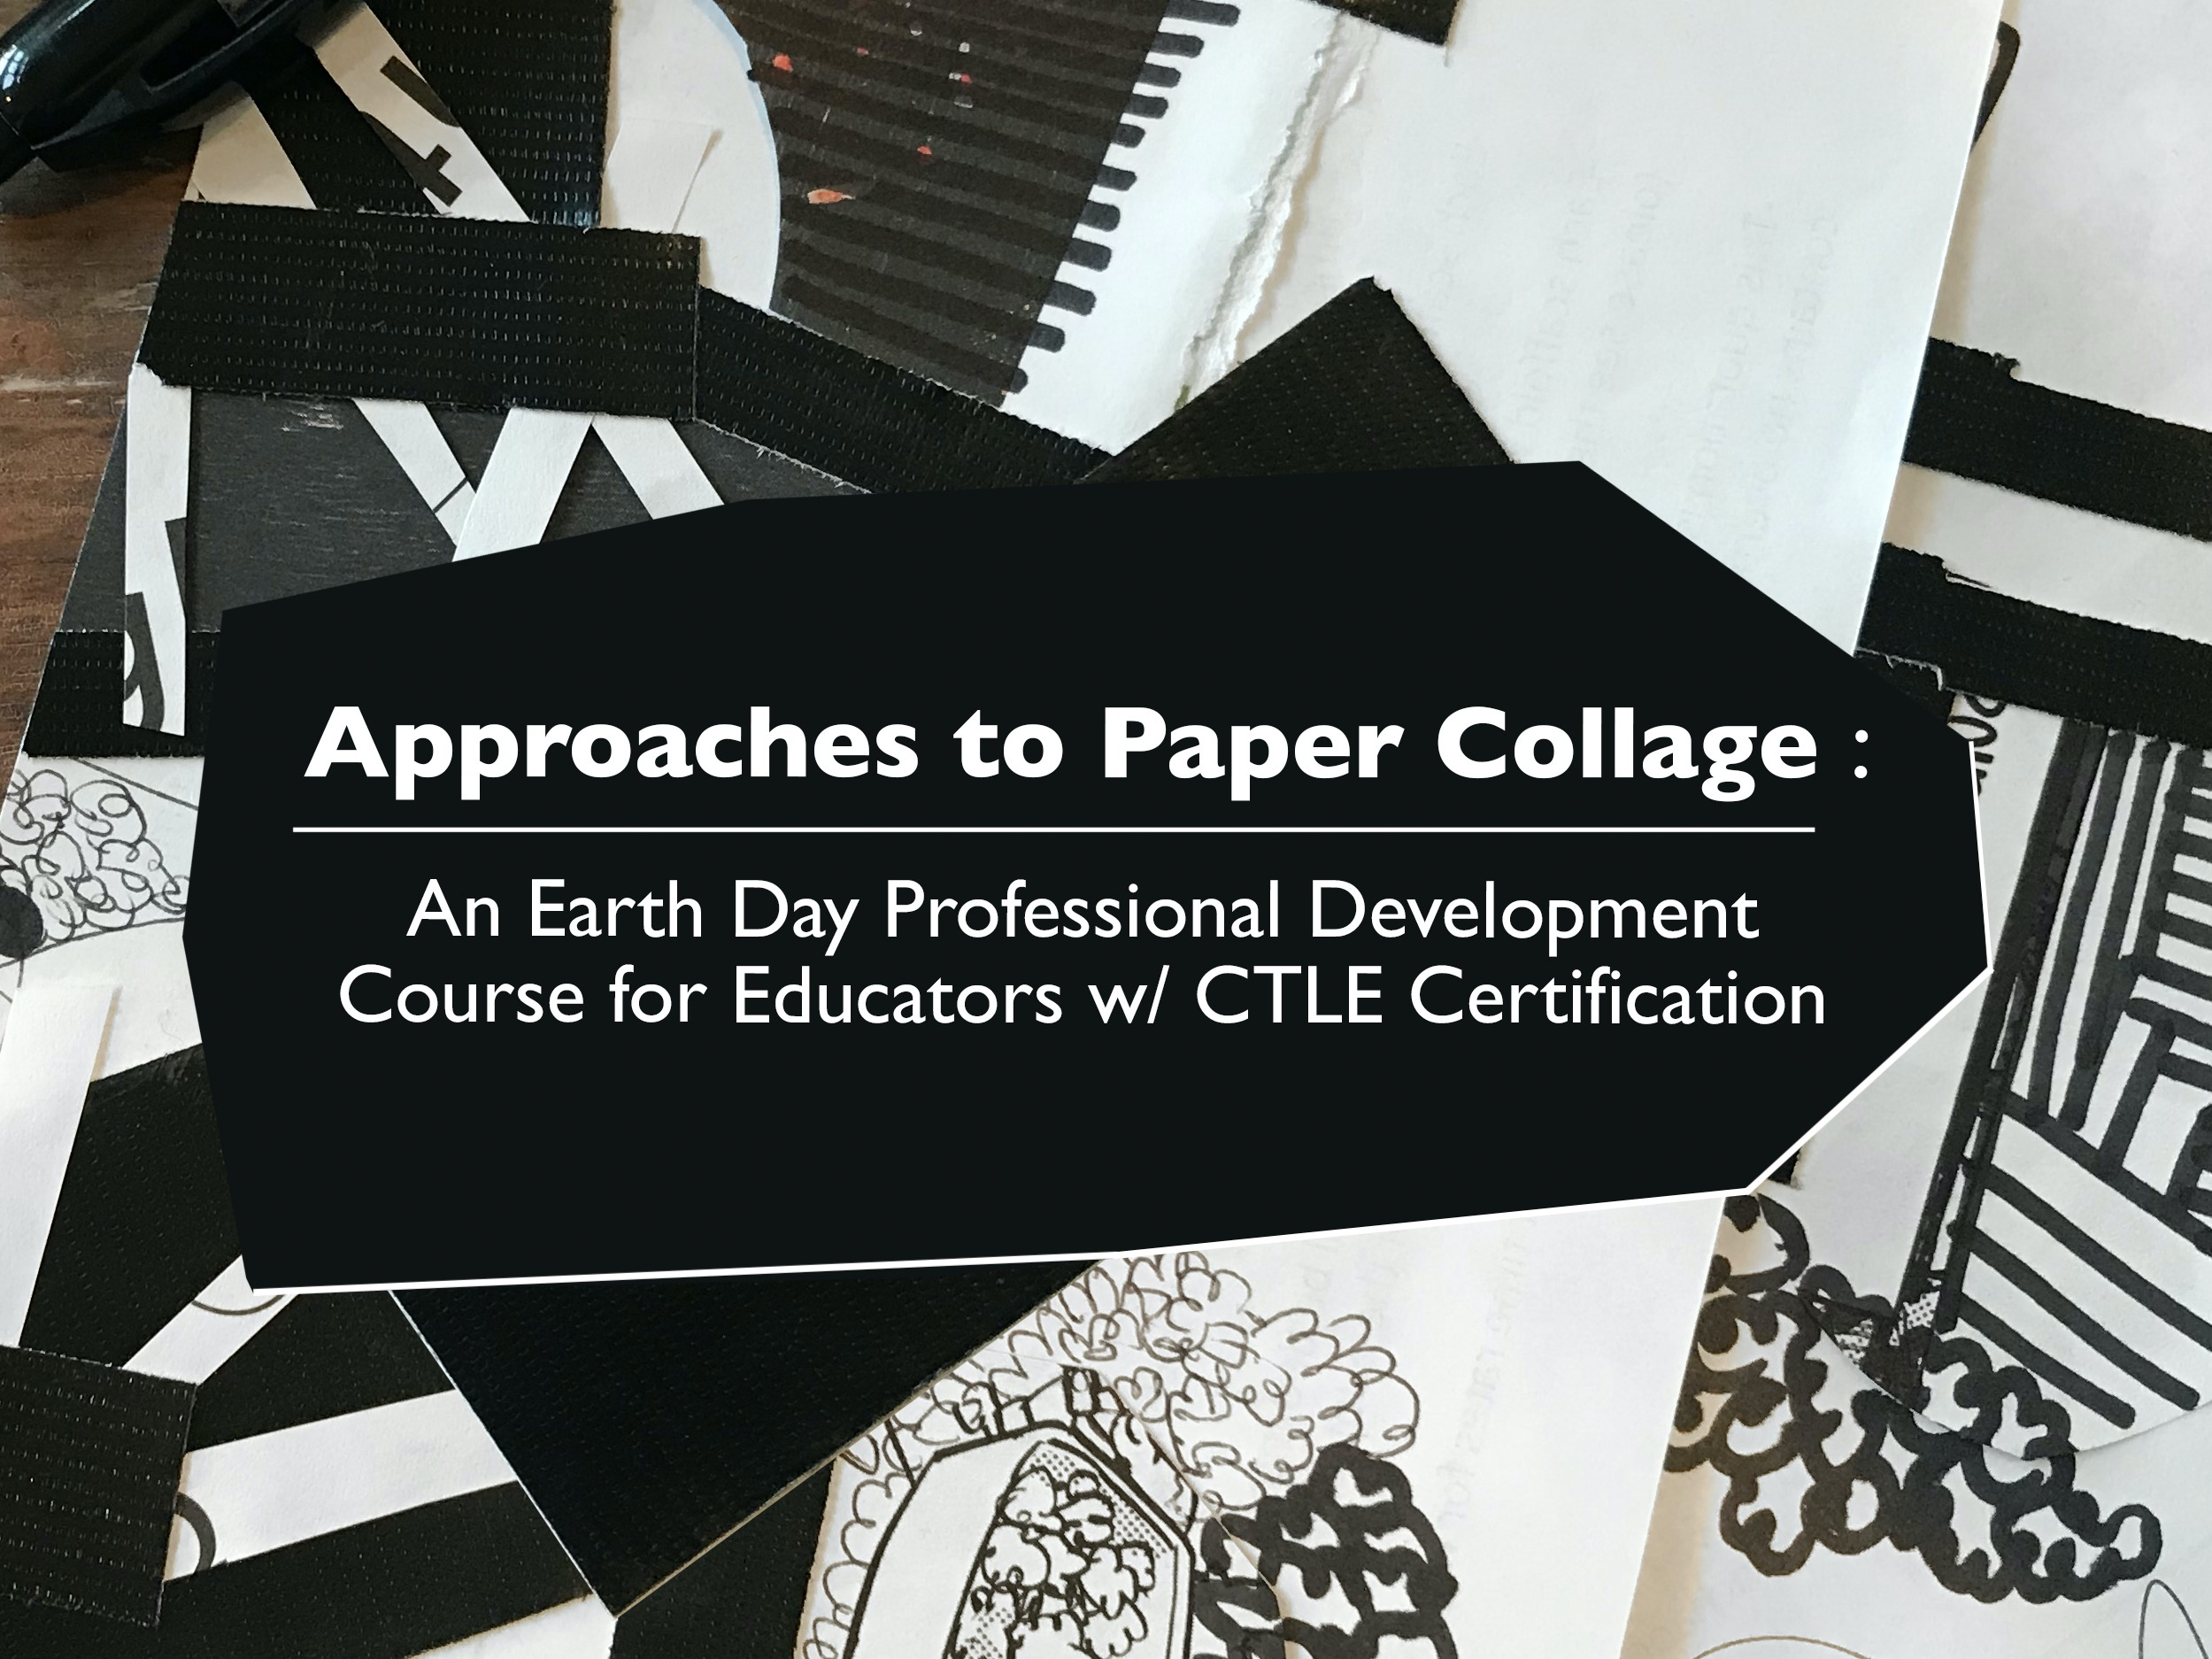 """The text, """"Approaches to Paper Collage : An Earth Day Professional Development Course for Educators w/ CTLE Certification"""" transposed above a black and white paper collage."""